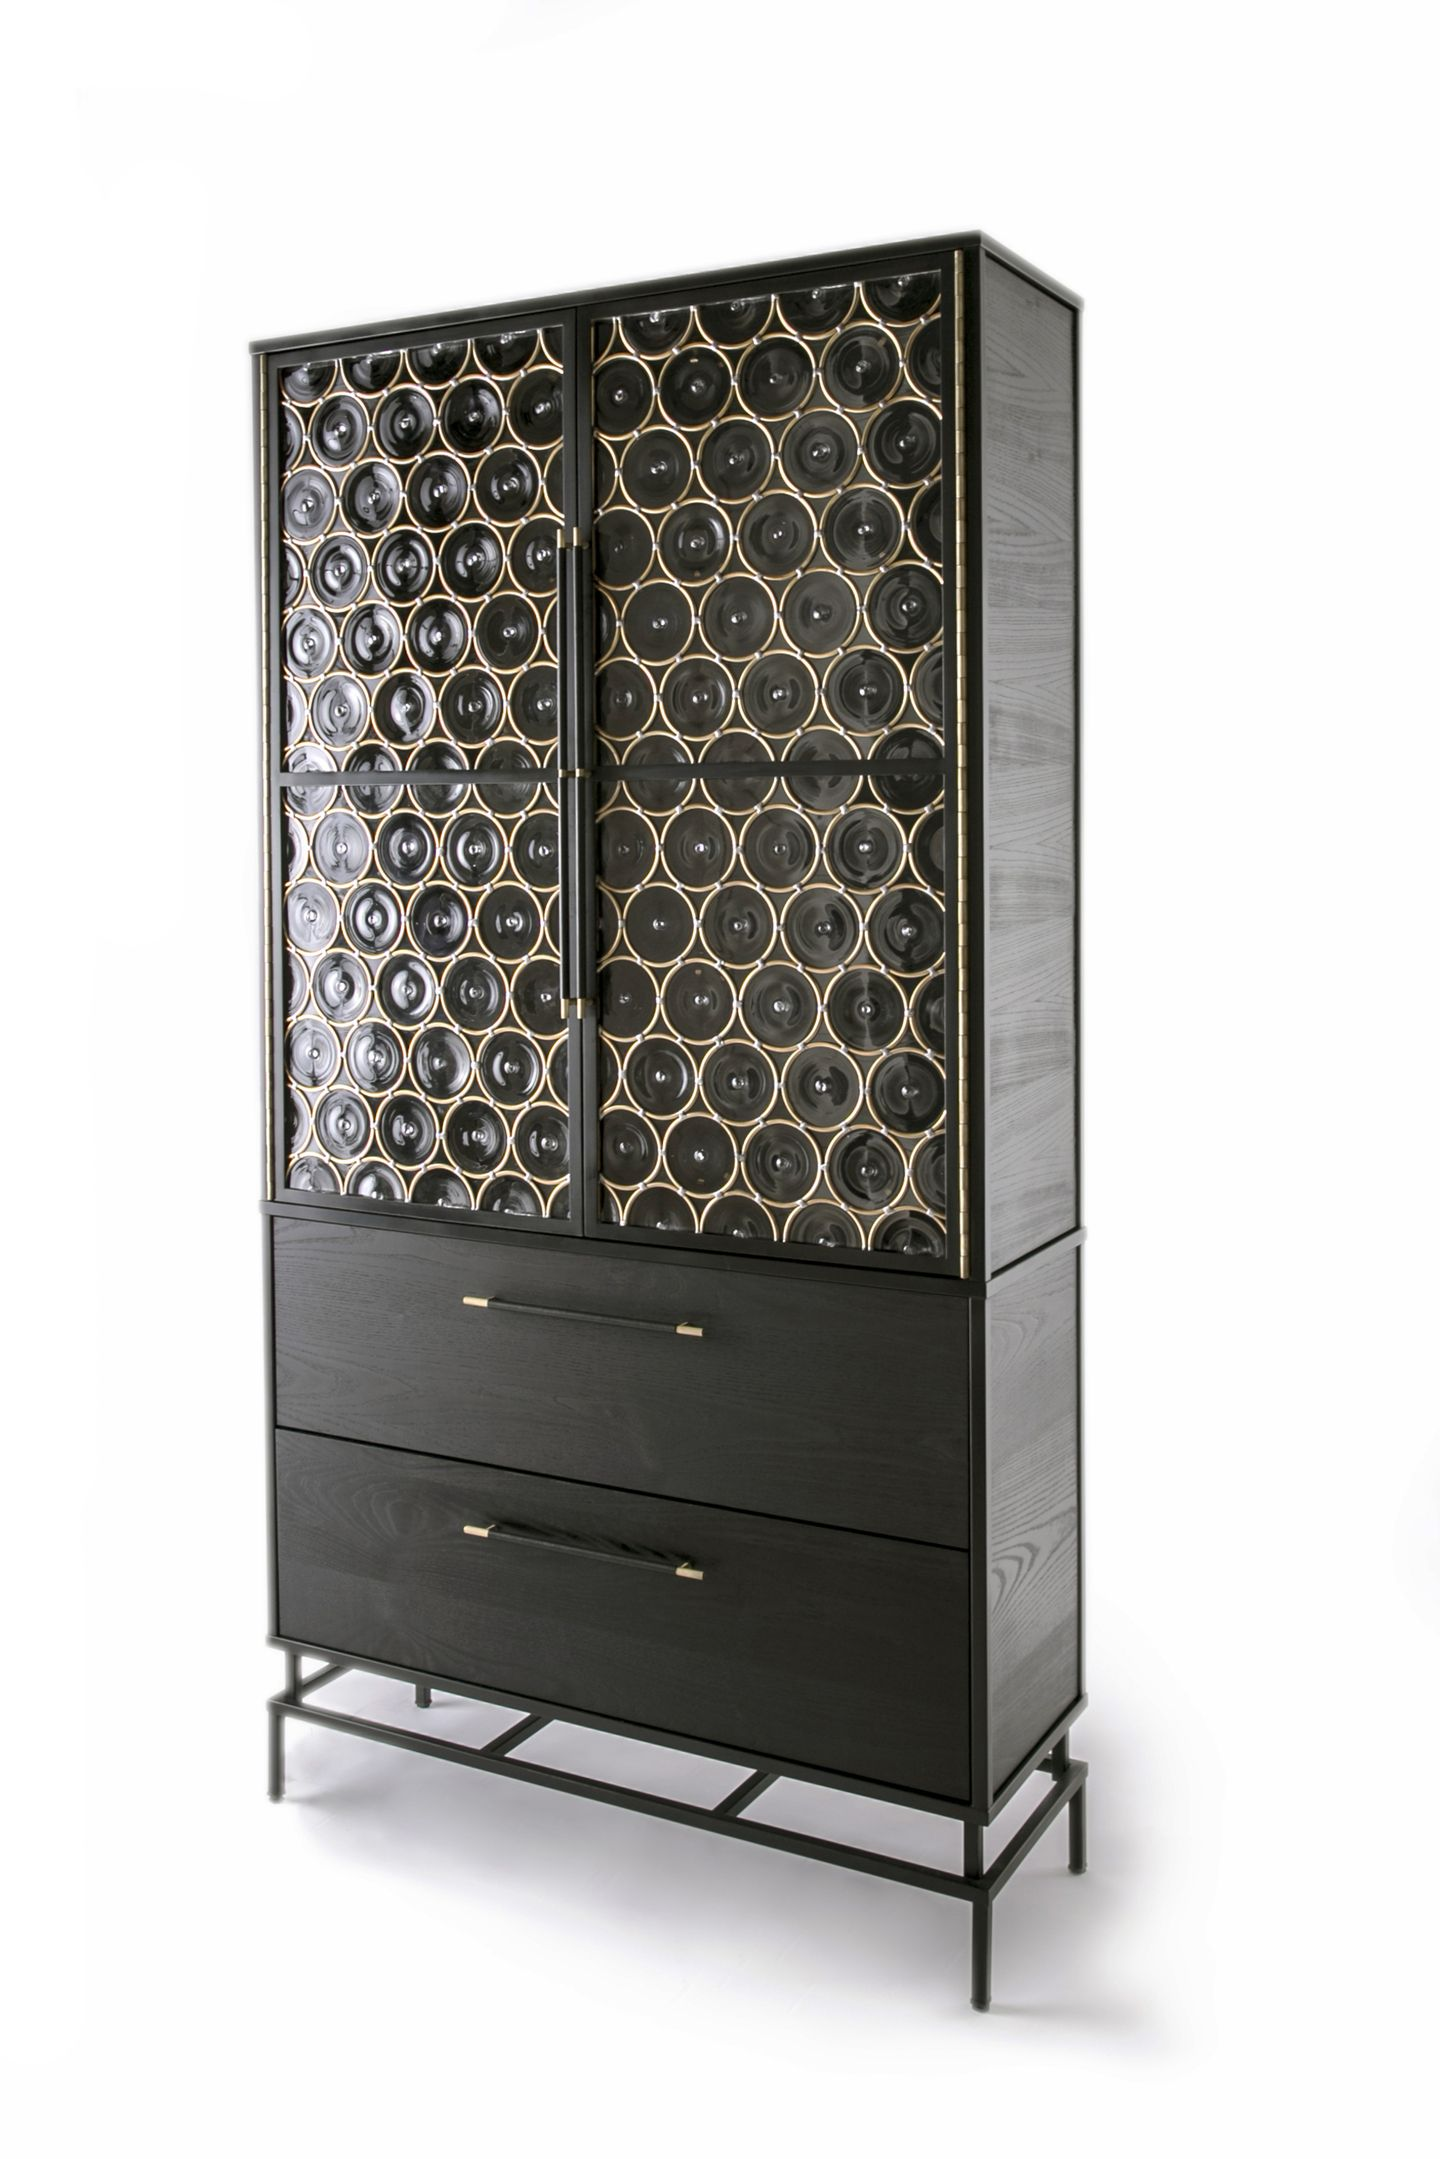 Rondelle armoire by John Pomp | Furniture | Pinterest